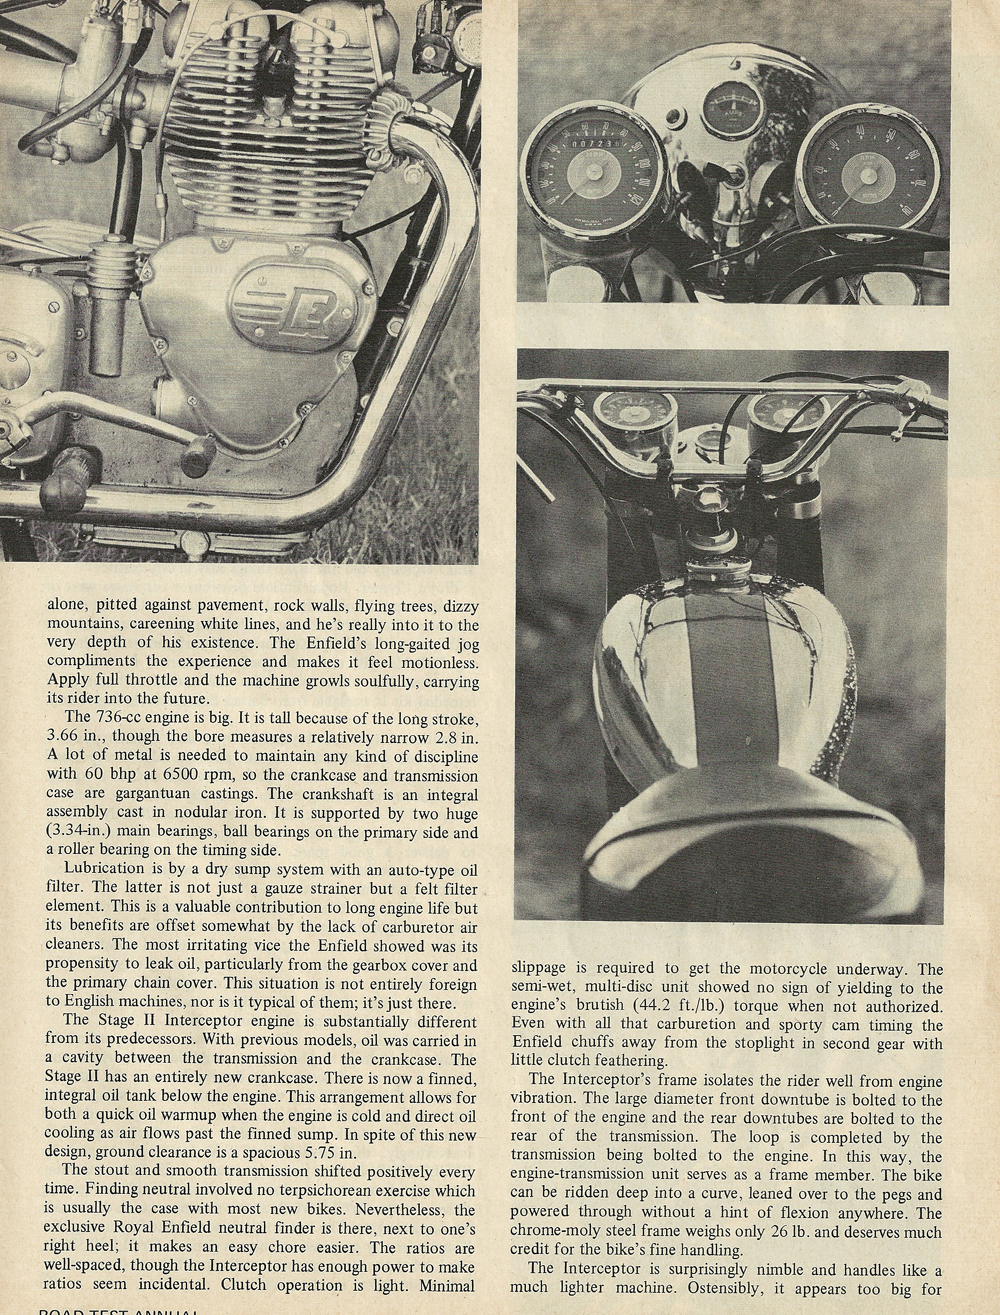 1969 Royal Enfield Stage 2 Interceptor road test 2.jpg